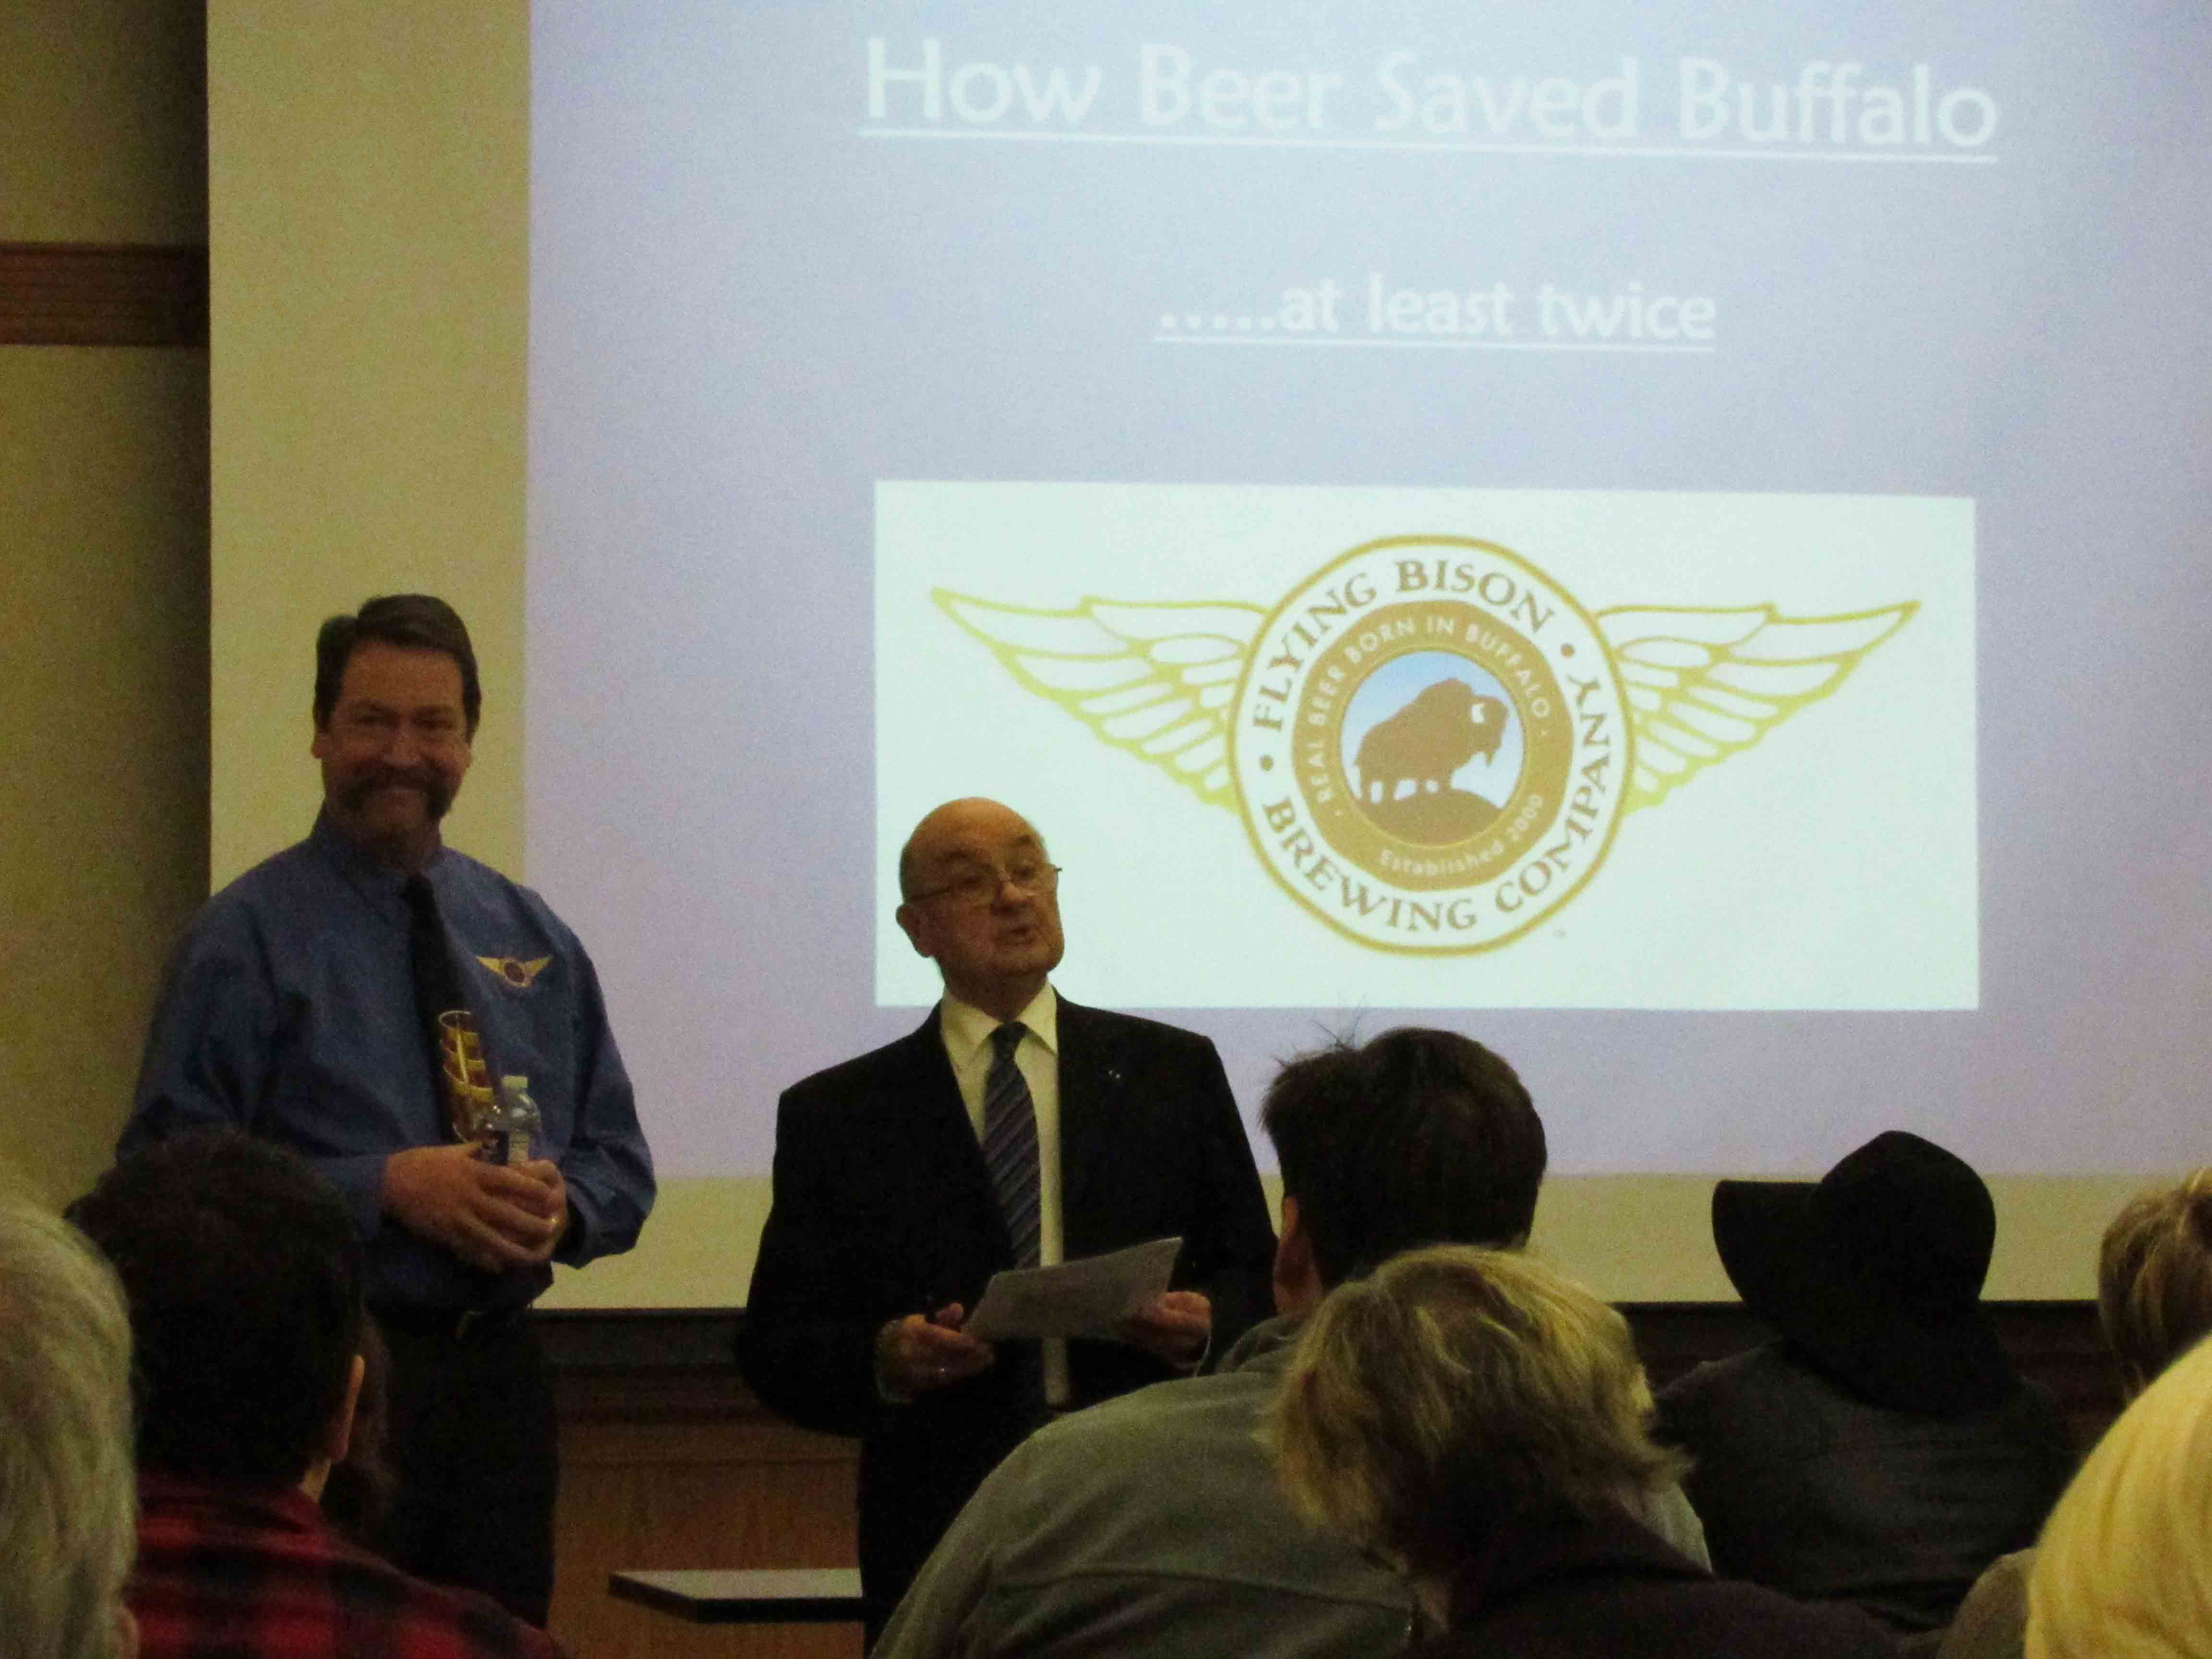 Flying Bison Brewery Owner Tim Herzog (pictured left) presented his lecture about the history of Buffalo brewing on Tuesday, Jan. 26 in the E.H. Butler Library.